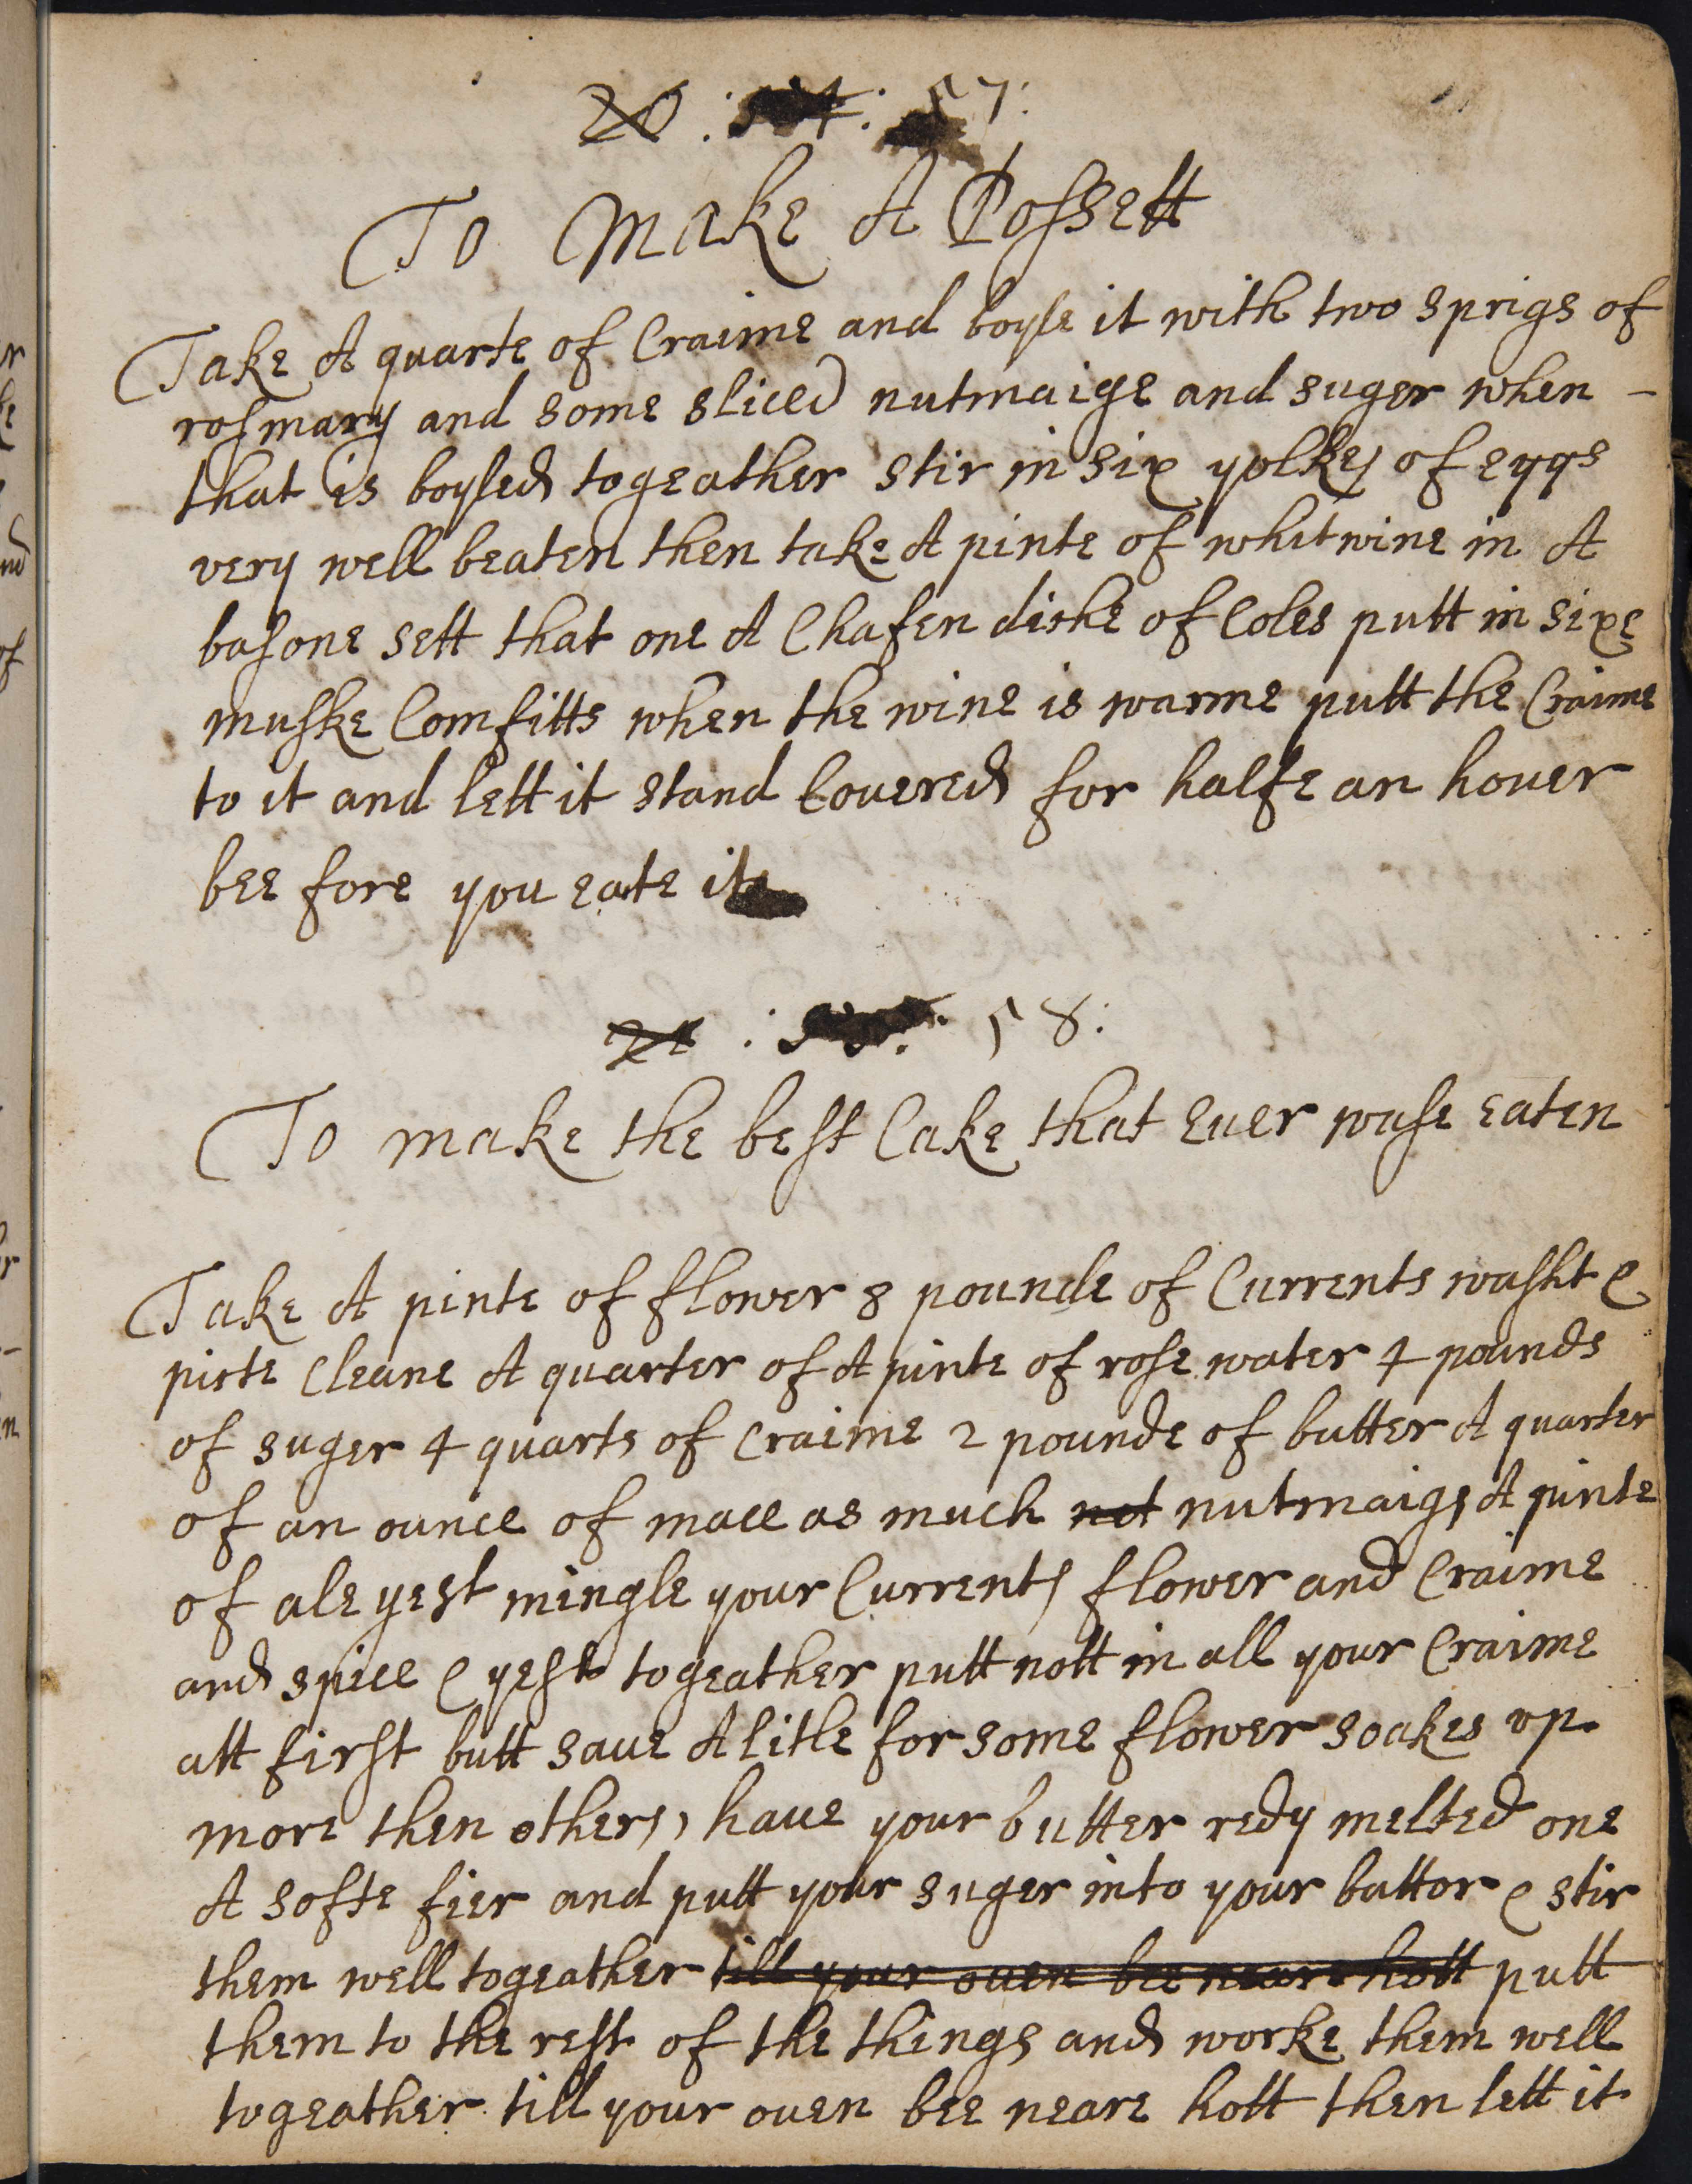 """To make the best Cake that euer wase eaten,"" Mariabella Charles, [Cookery recipes and medical cures] [ca. 1678]. William Andrews Clark Memorial Library (UCLA): MS.1950.009"